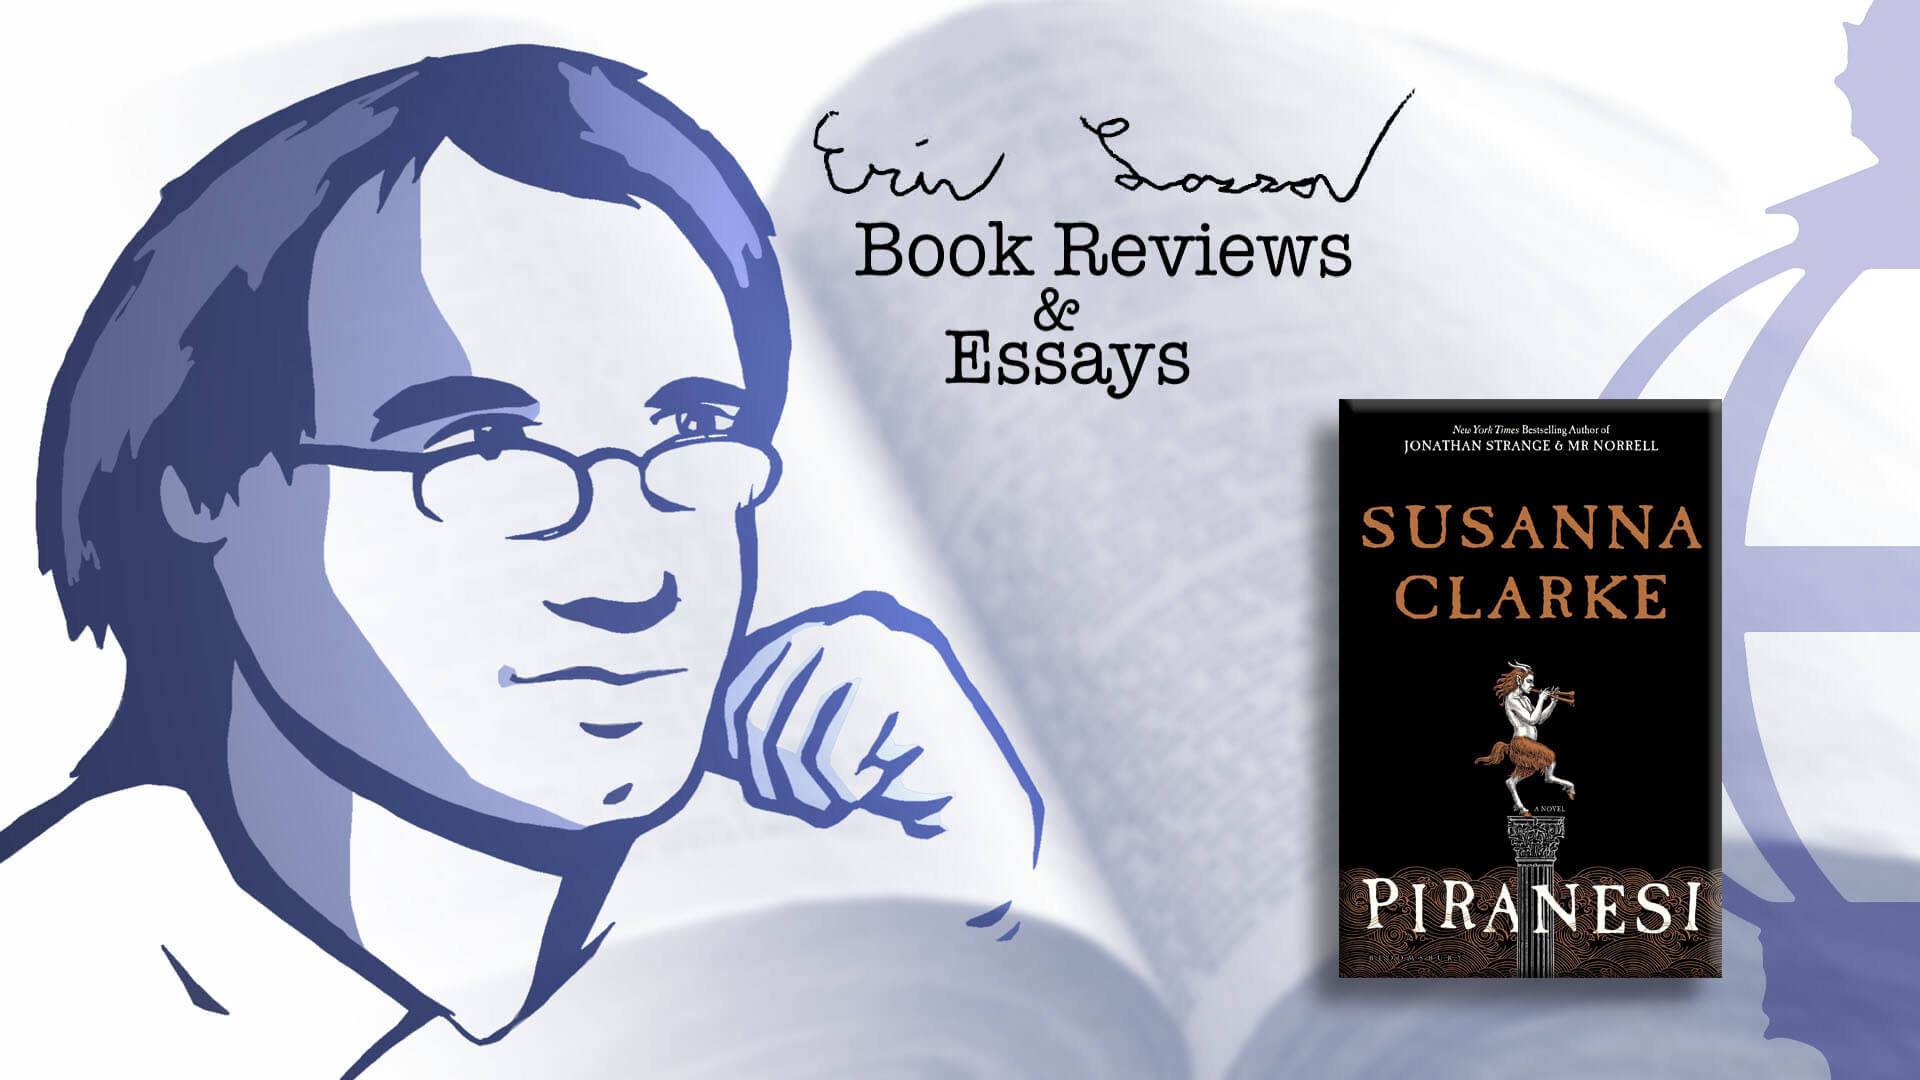 Erin Larson Book Reviews and Essays Image